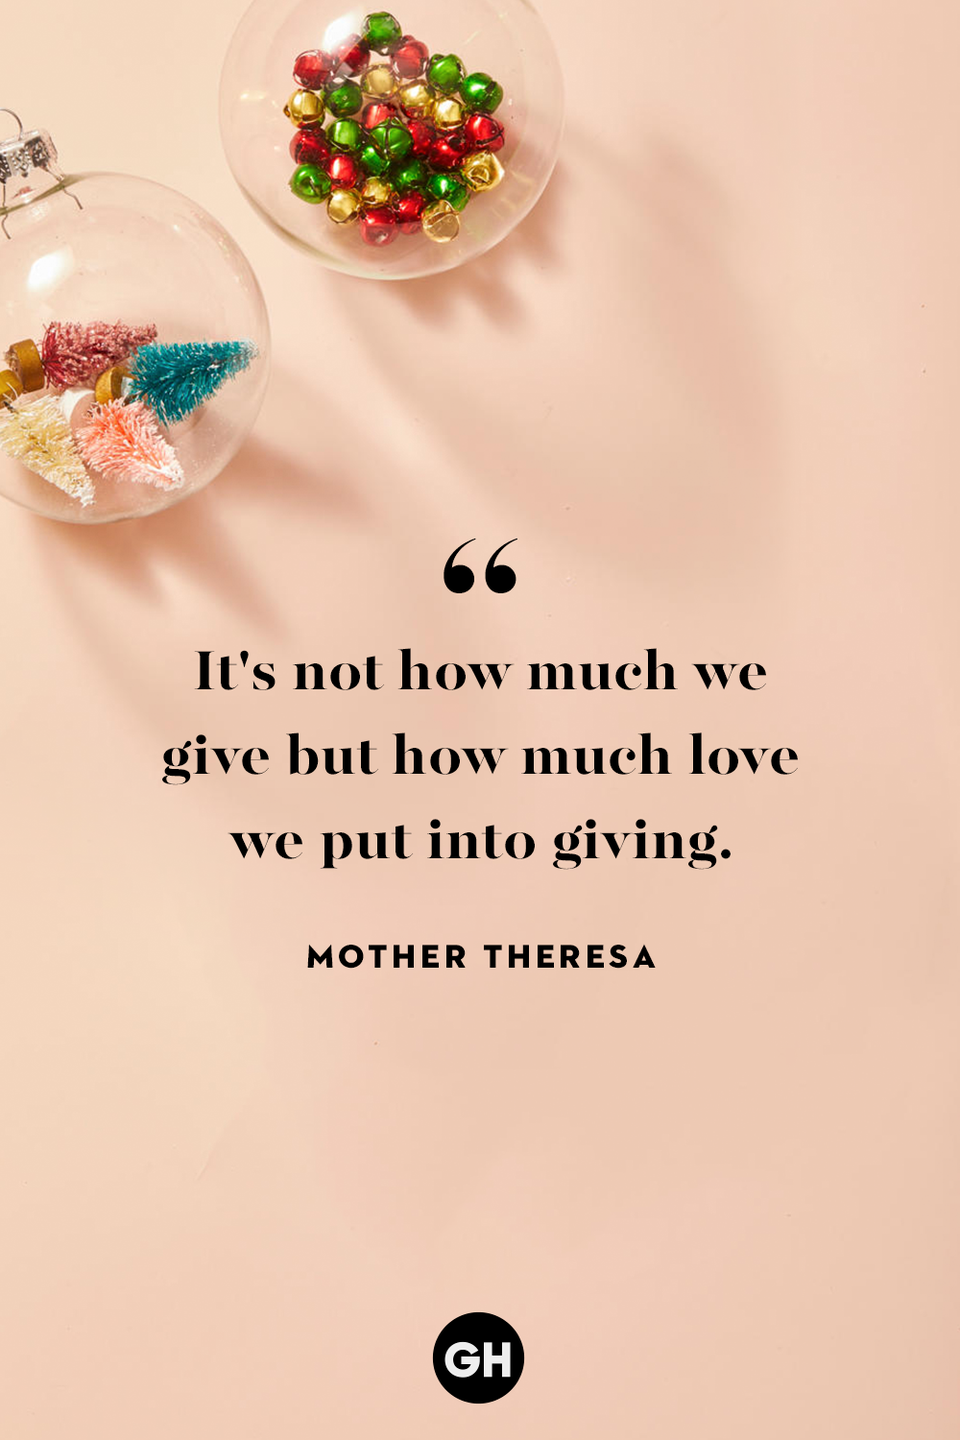 <p>It's not how much we give but how much love we put into giving.</p>